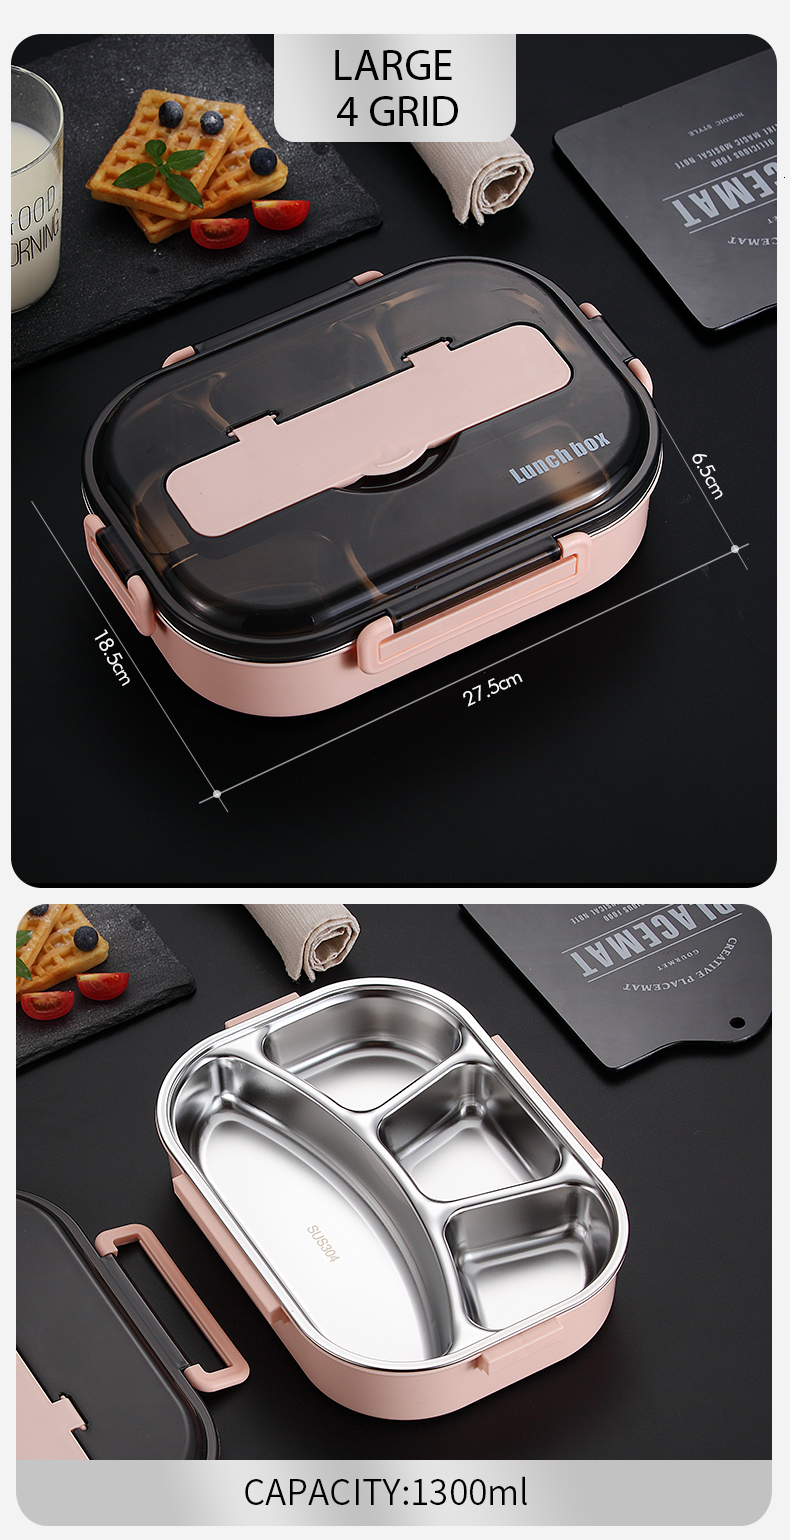 H7bb0aa9dc1604c8d90c93bb681f64c11N - WORTHBUY Japanese Kids Lunch Box 304 stainless steel Bento Lunch Box With Compartment Tableware Microwave Food Container Box